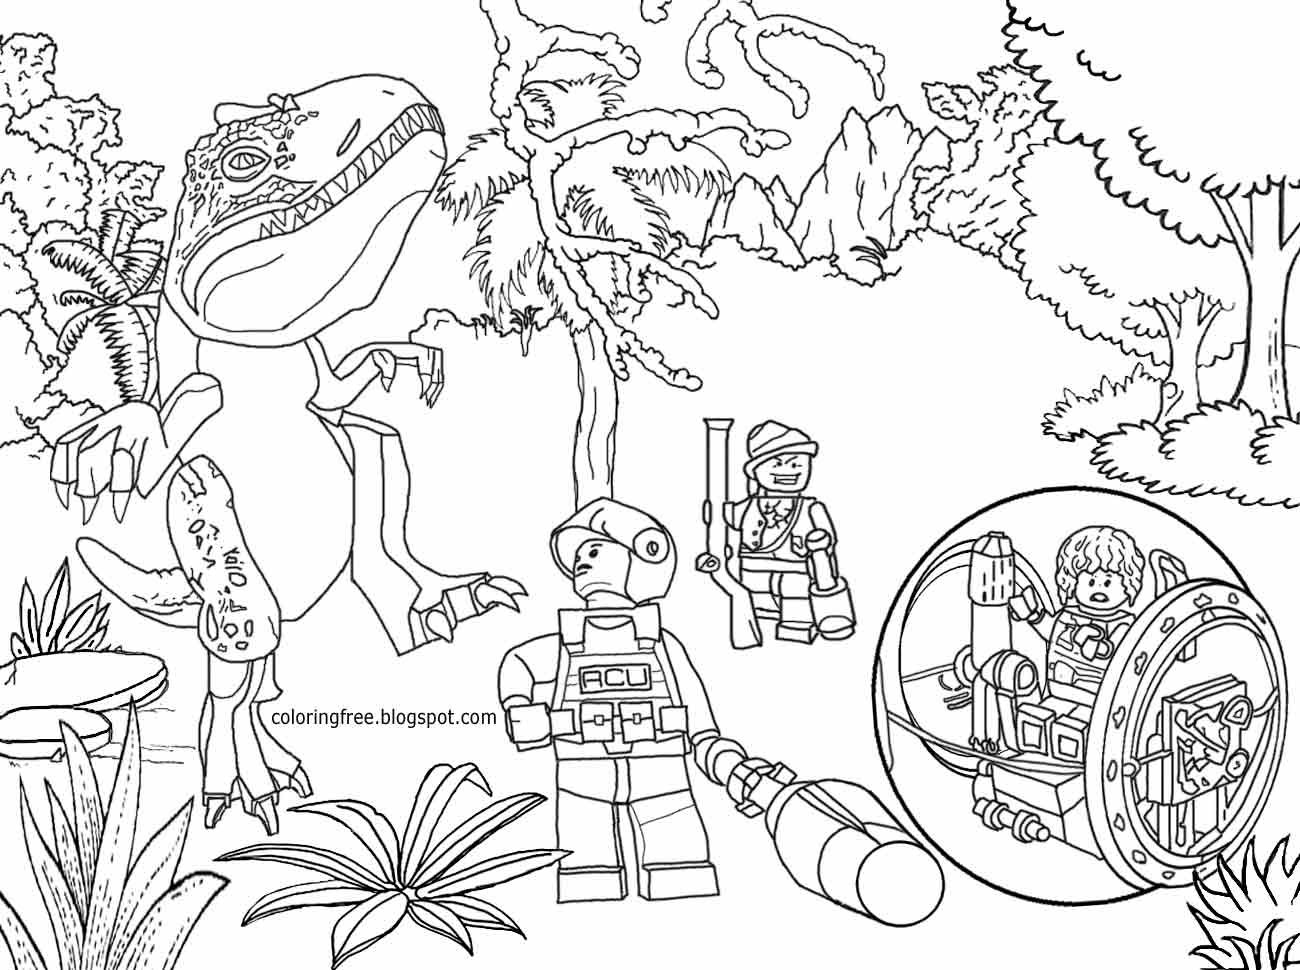 1300x970 Printable Lets Coloring Book Caveman Free Coloring Pages Download